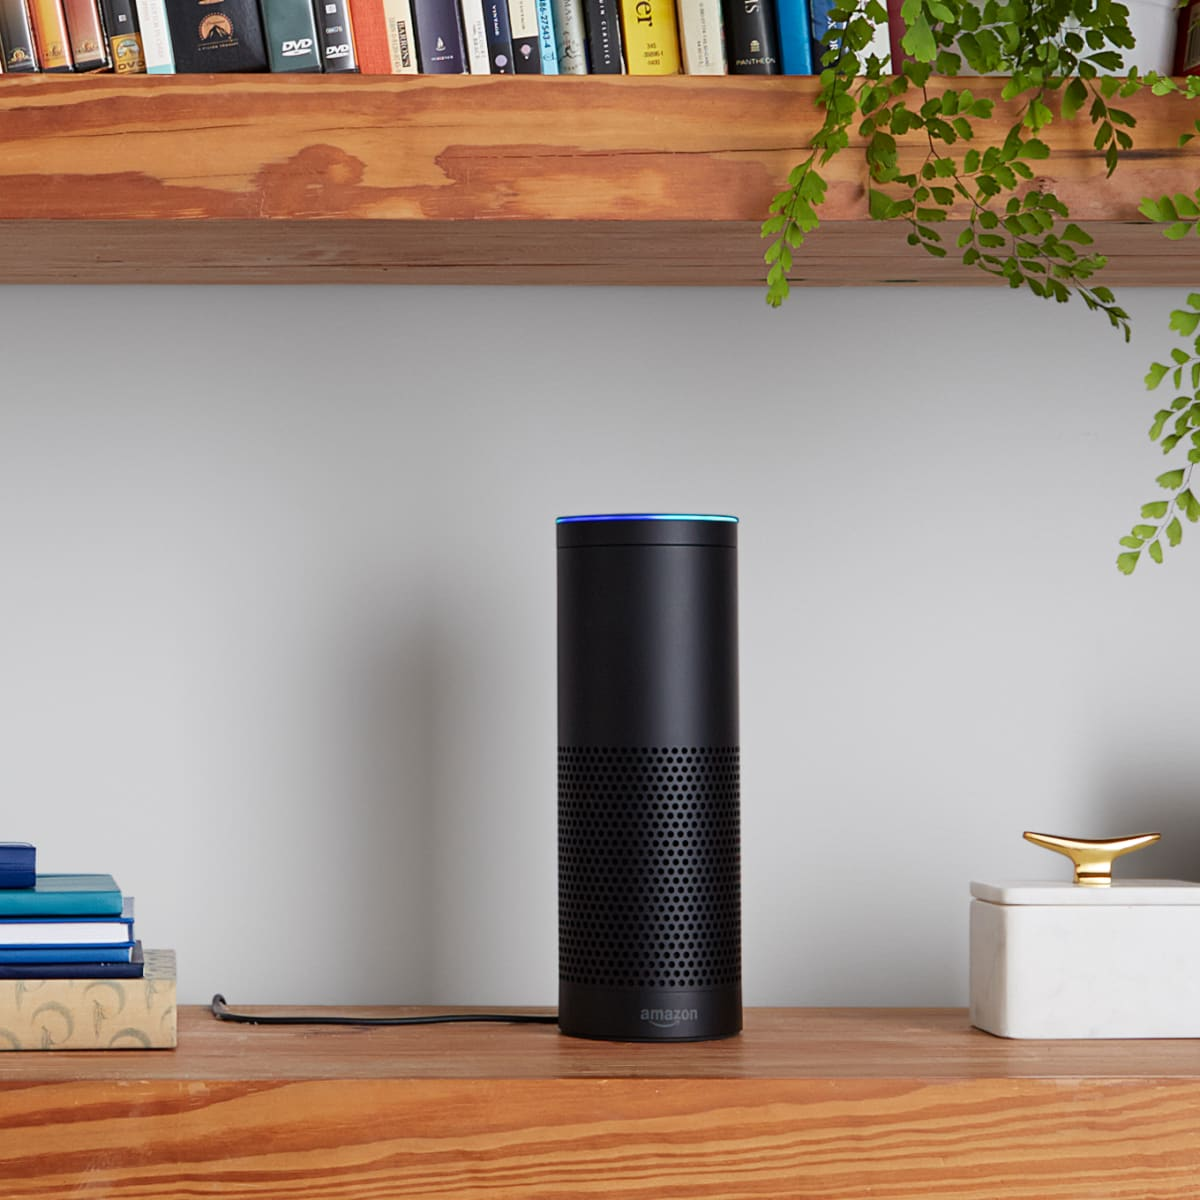 The Best Alexa-Compatible Smart Home Devices of 2019 - Reviewed